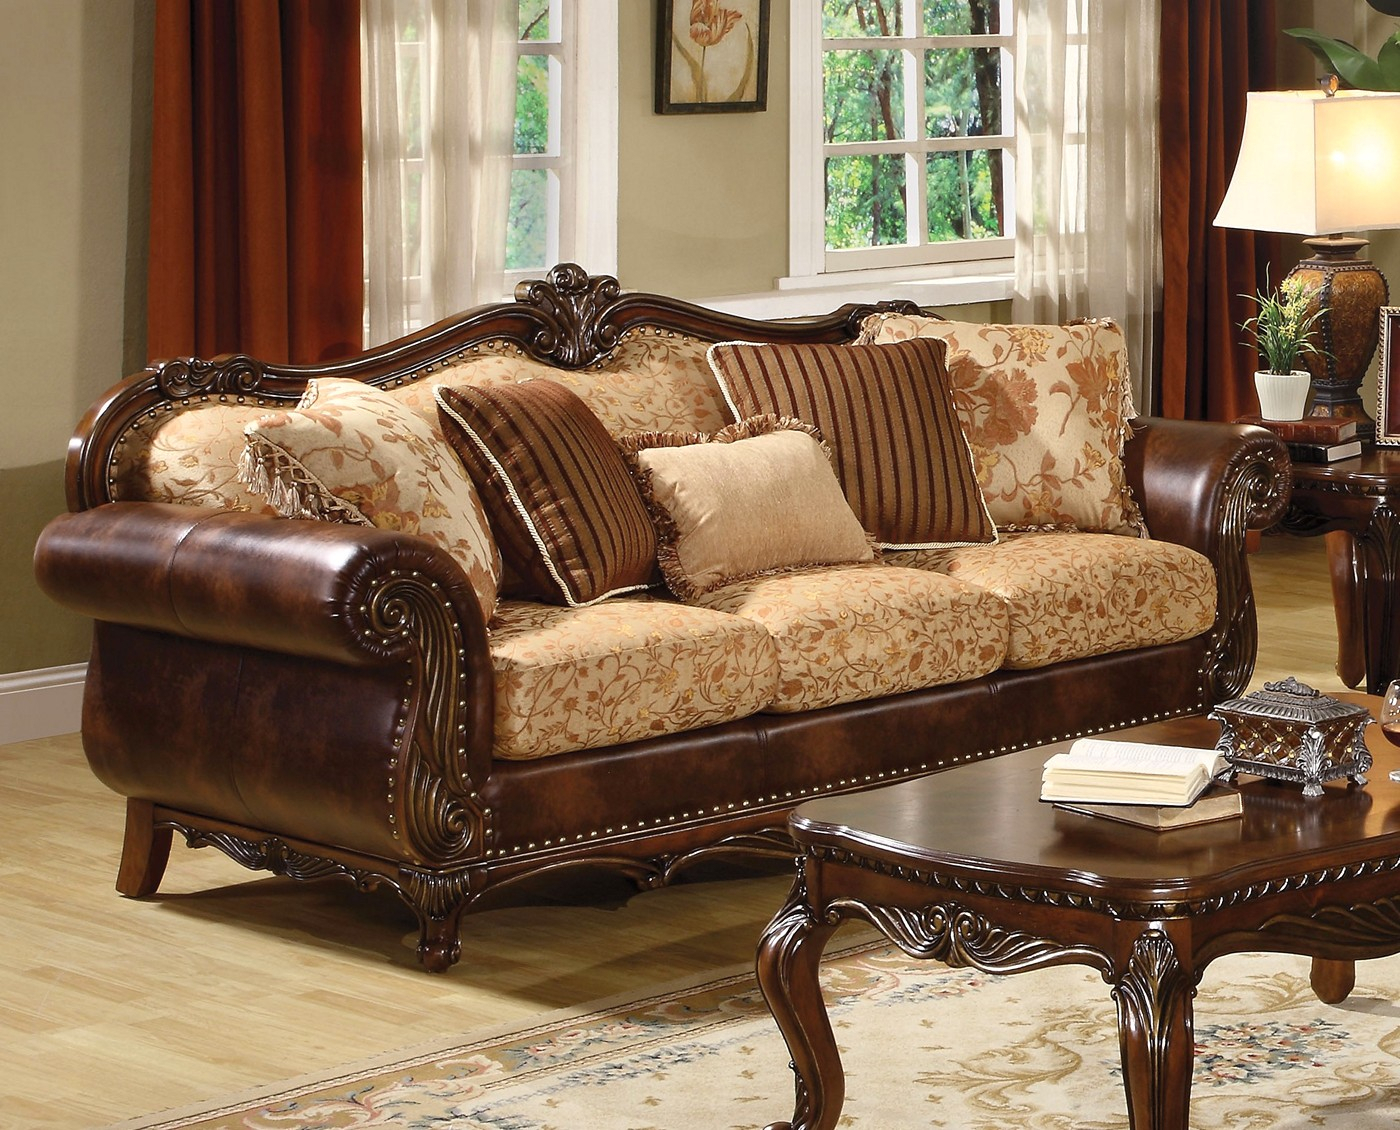 Radbourne Traditional Brown & Floral Fabric Sofa In Cherry Regarding Floral Sofas And Chairs (View 11 of 15)